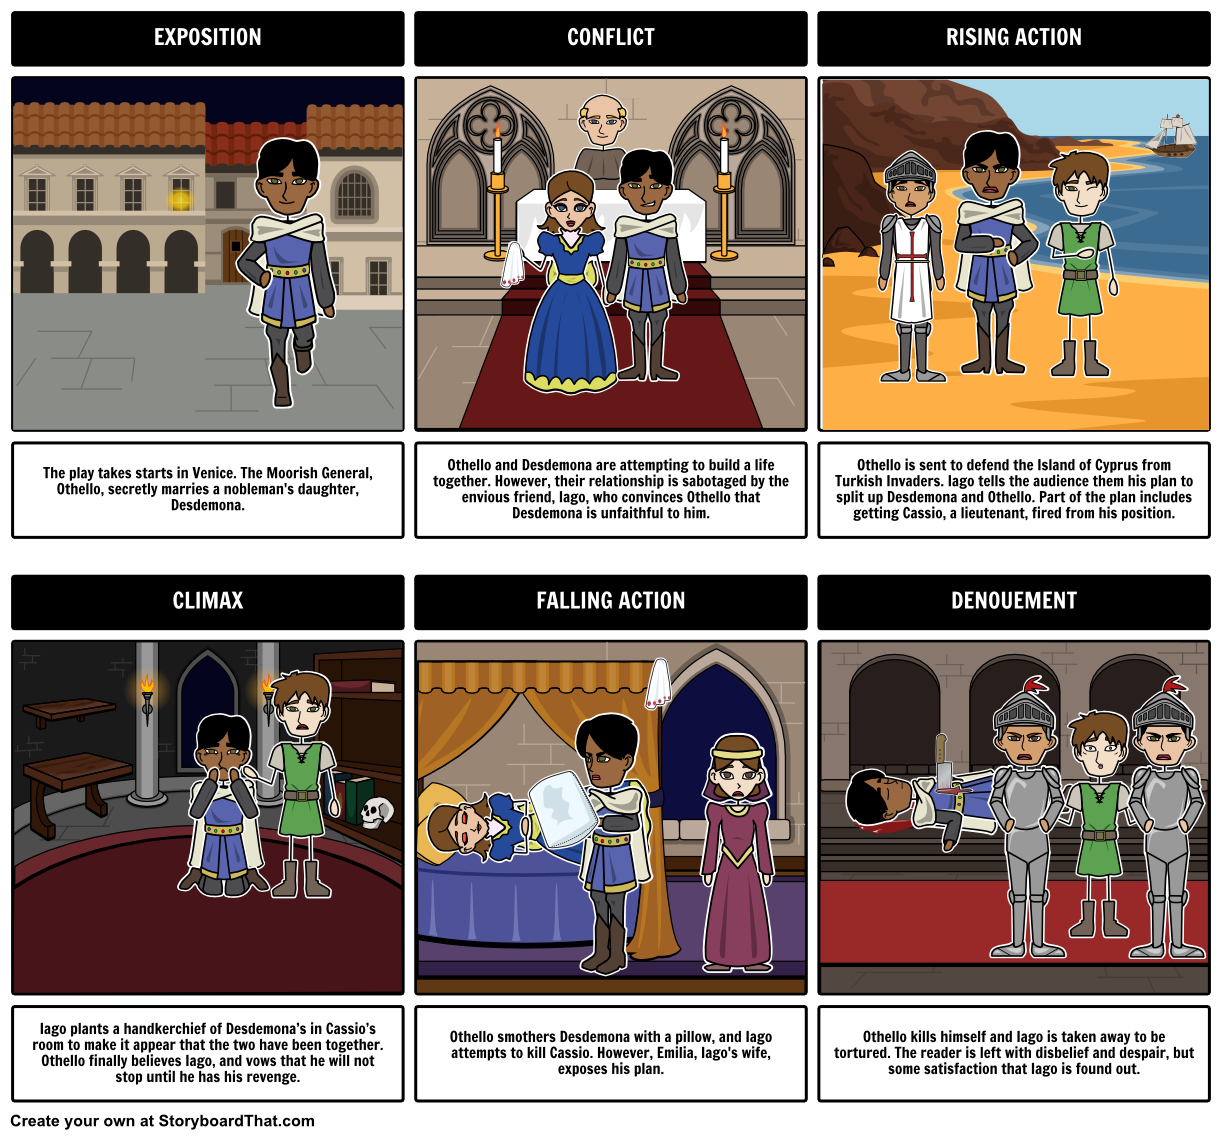 notes on tragedy and othello The tragedy of othello in a special guide for this year's leaving cert students, pat hunt looks at shakespeare's uniquely human tragedy about the moor of venice november 21 2007 12:00 am.